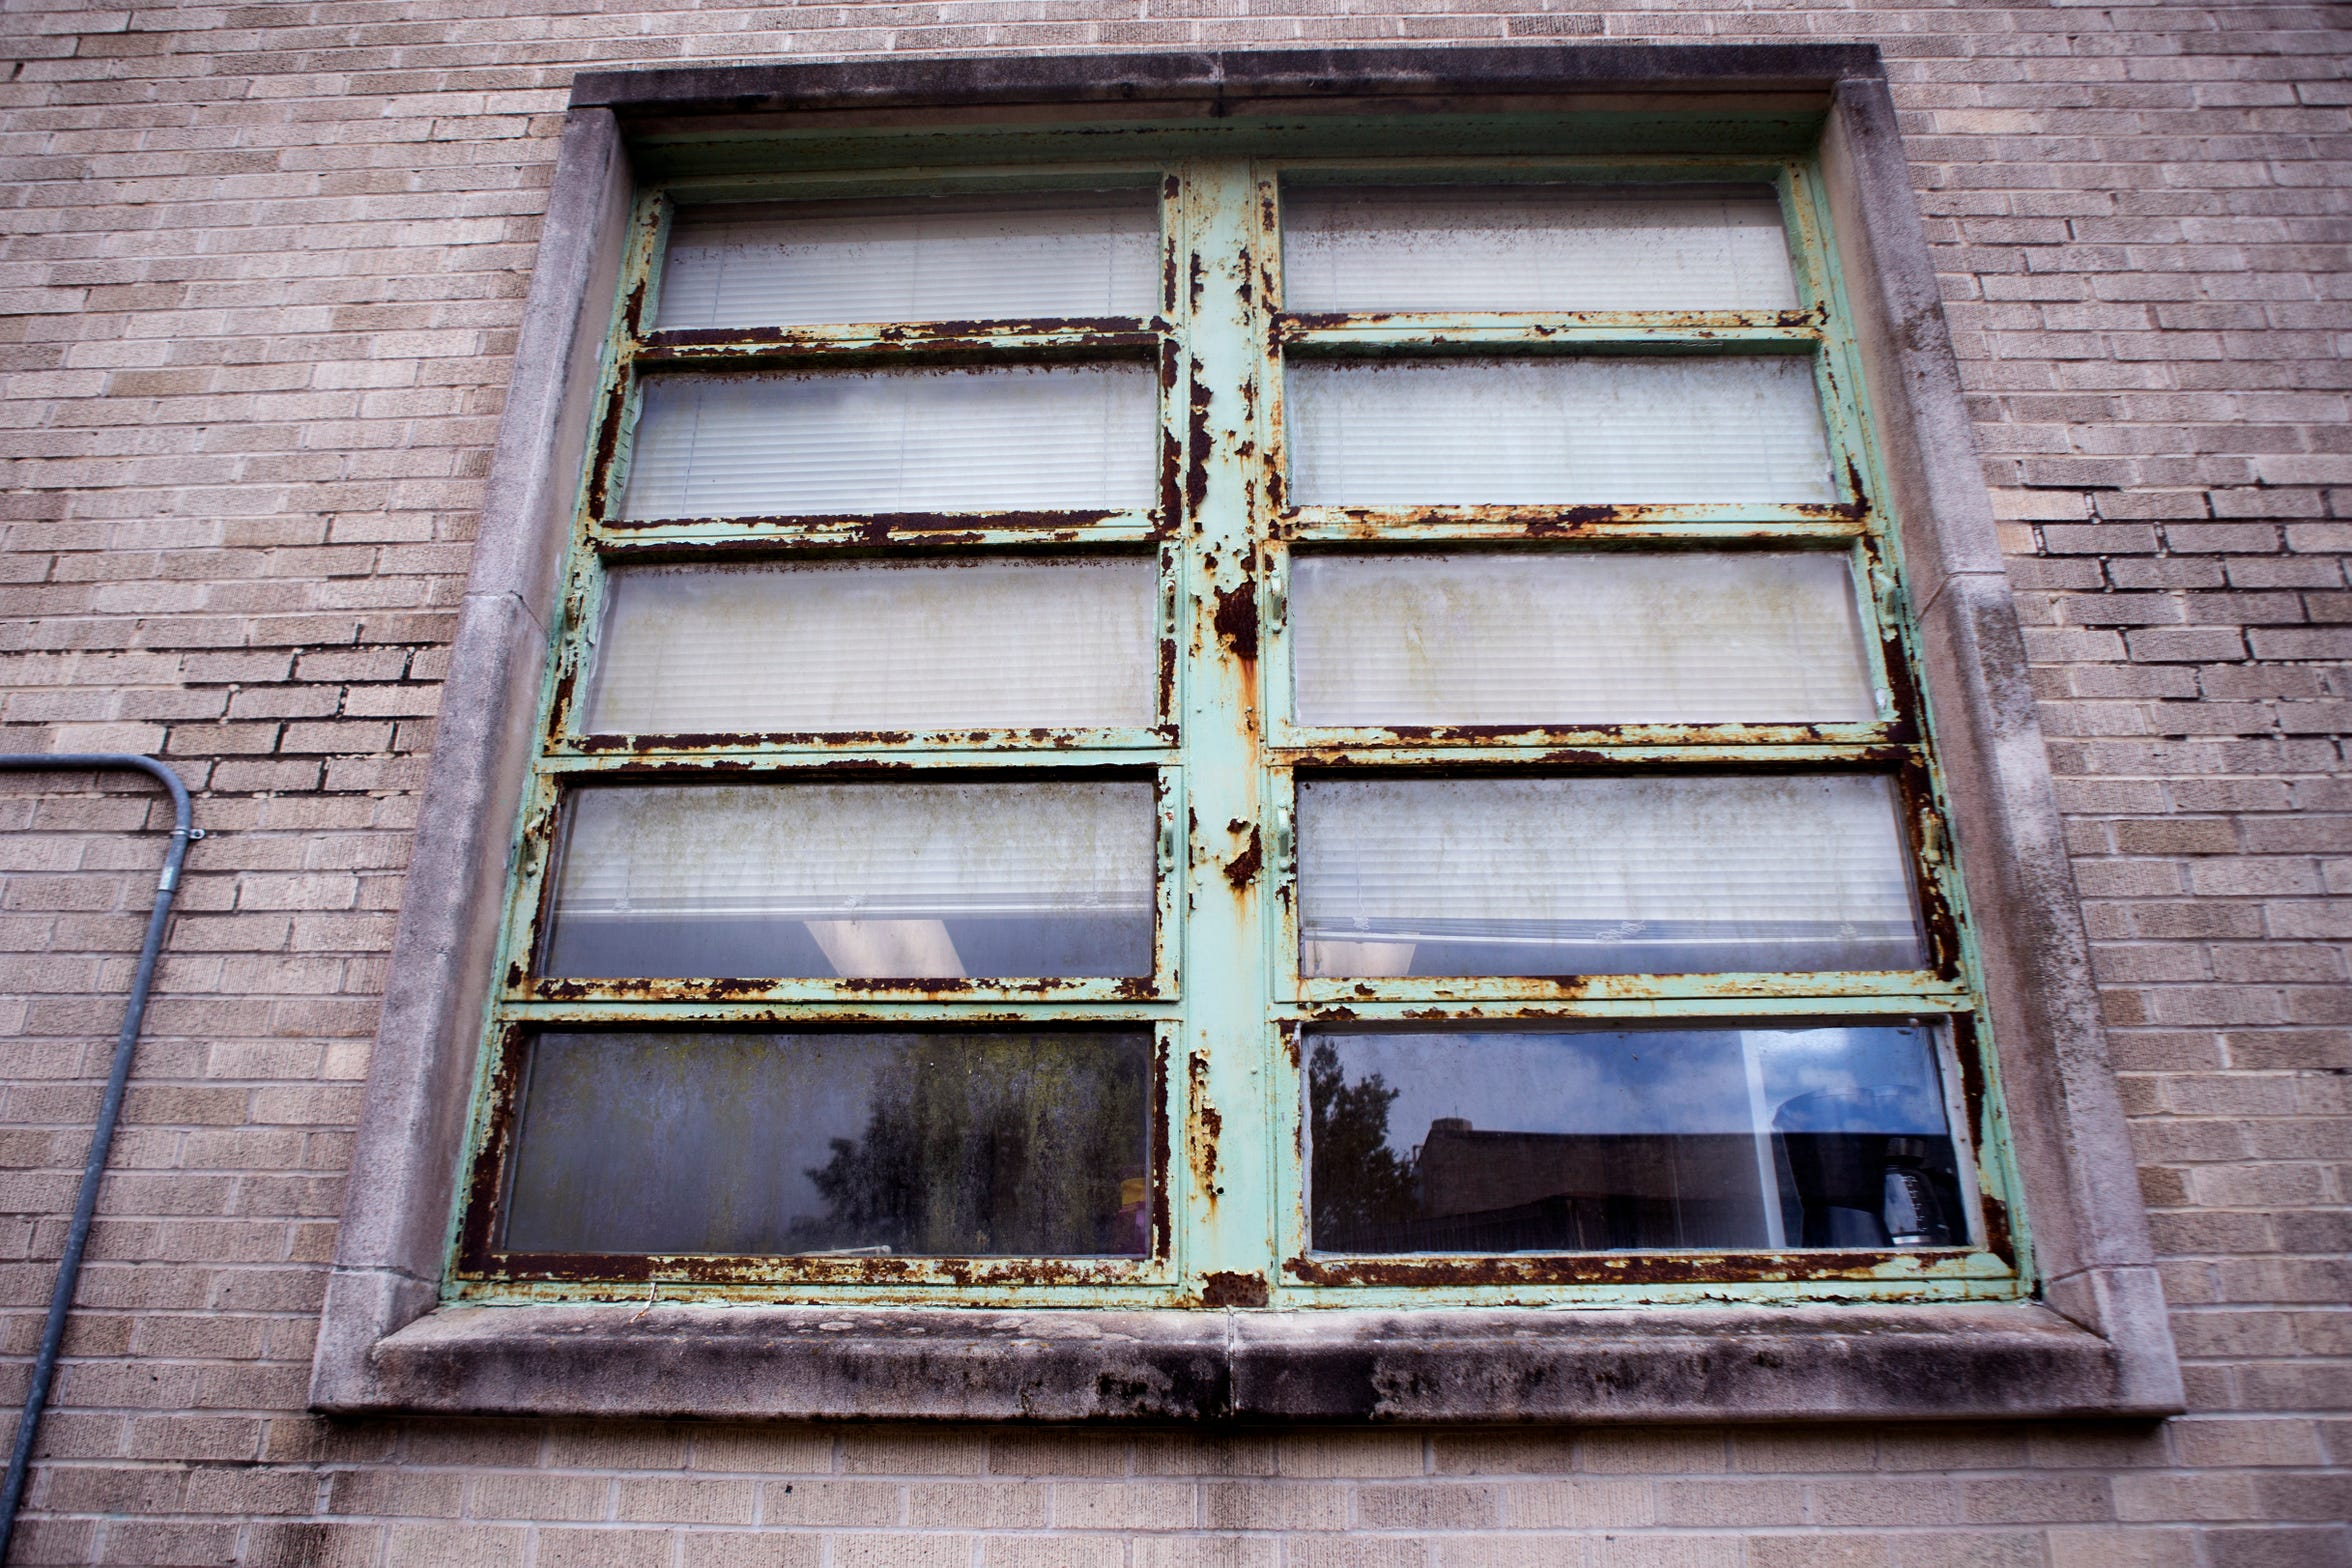 The Corpus Christi ISD Board of Trustees has called for a bond referendum which includes replacement of windows at Ray High School. The school has replaced some windows, but the remainder of the windows would need to be replaced with a bond measure.